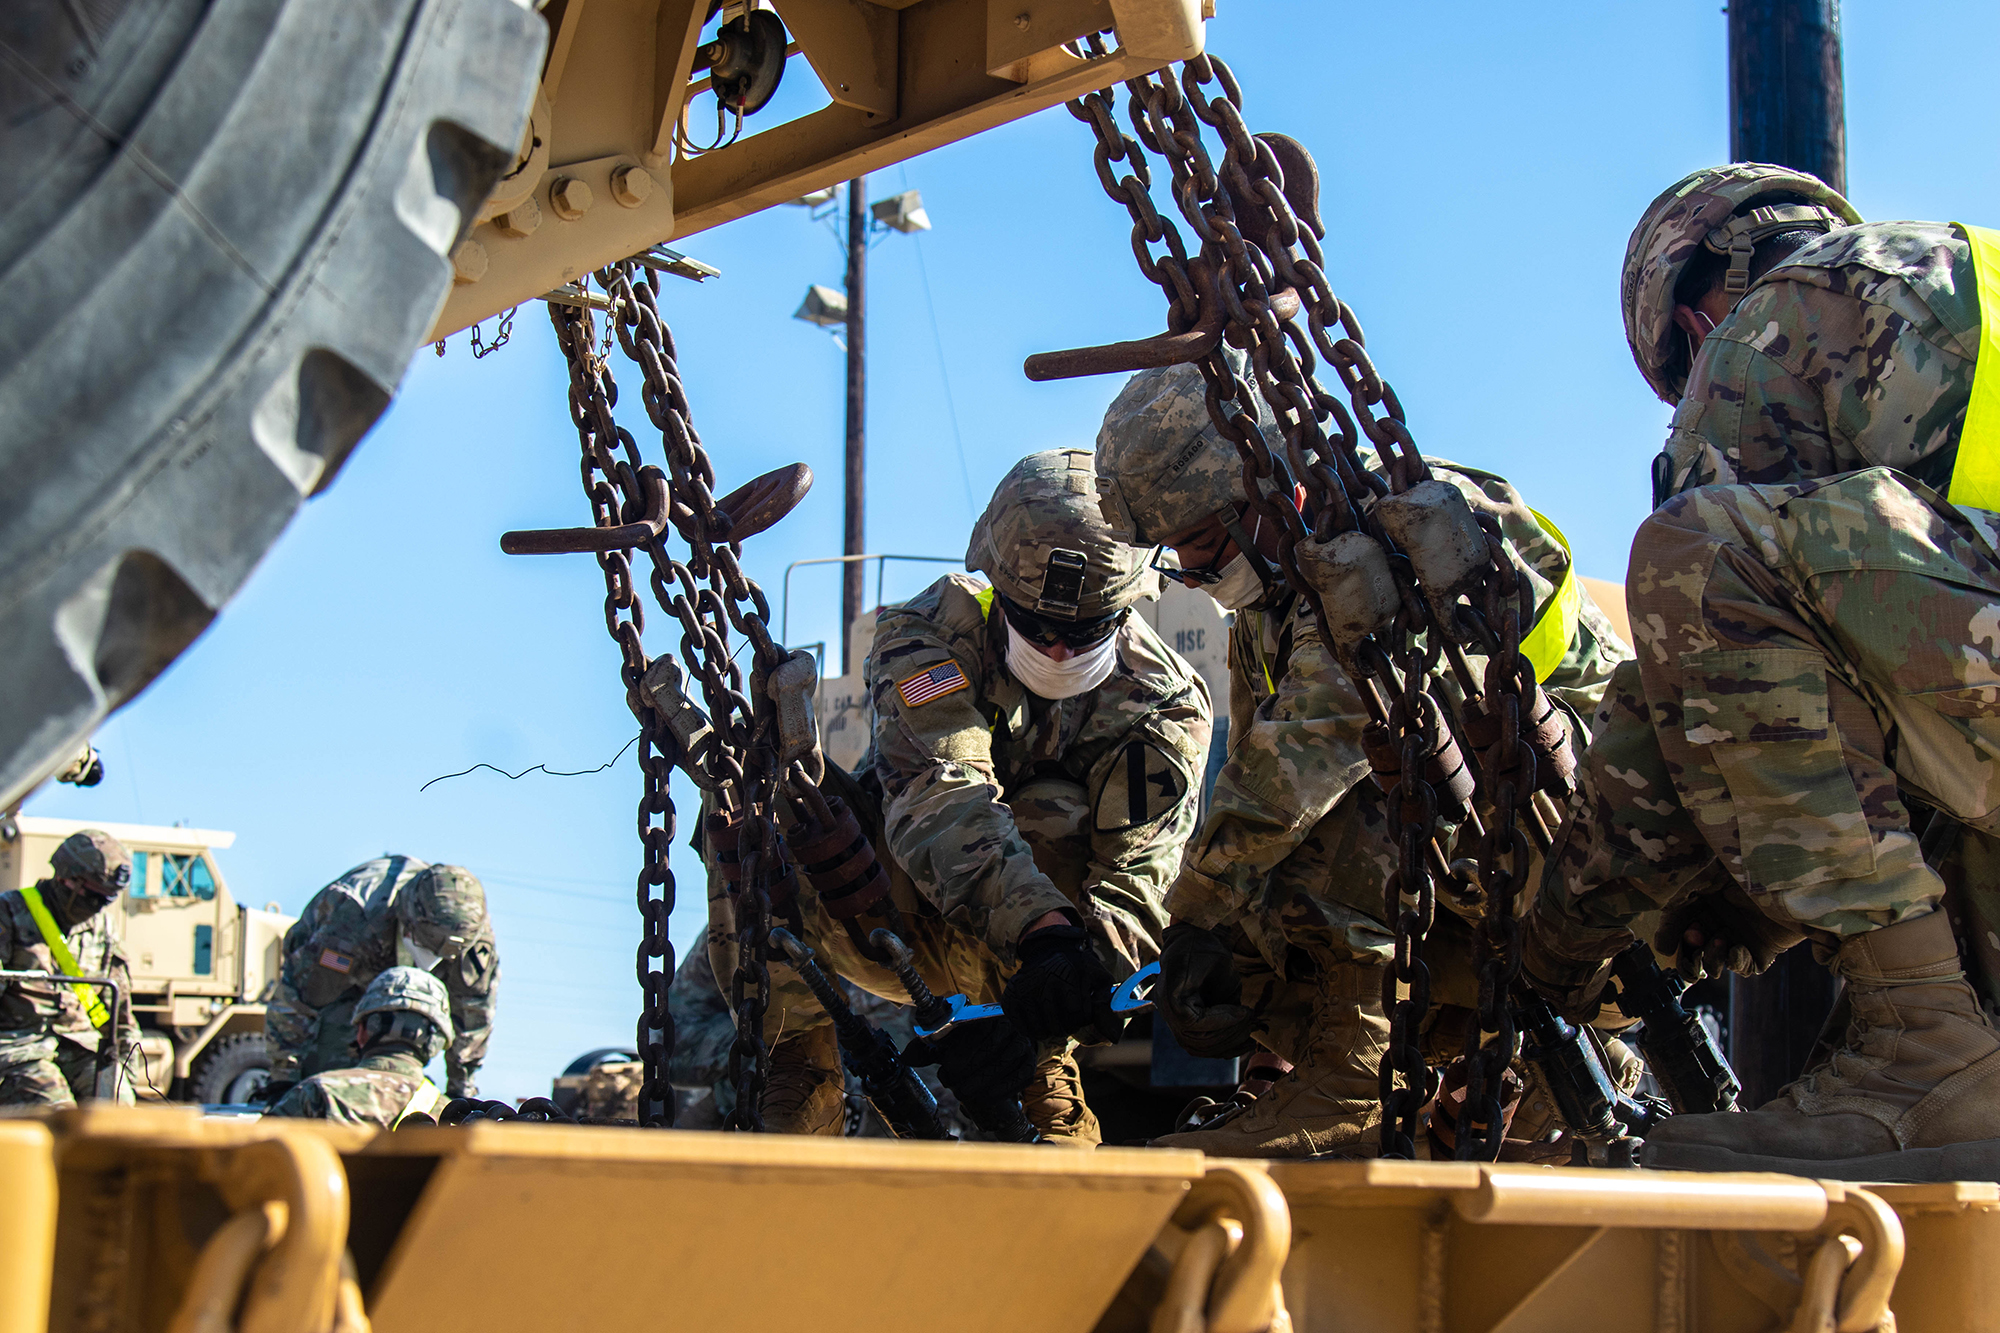 Motor Transport Operators with 1st Cavalry Division Sustainment Brigade unfasten a vehicle from a rail-cart during railhead operations, Fort Hood, Texas, June 8, 2020. (Sgt. Calab Franklin/Army)